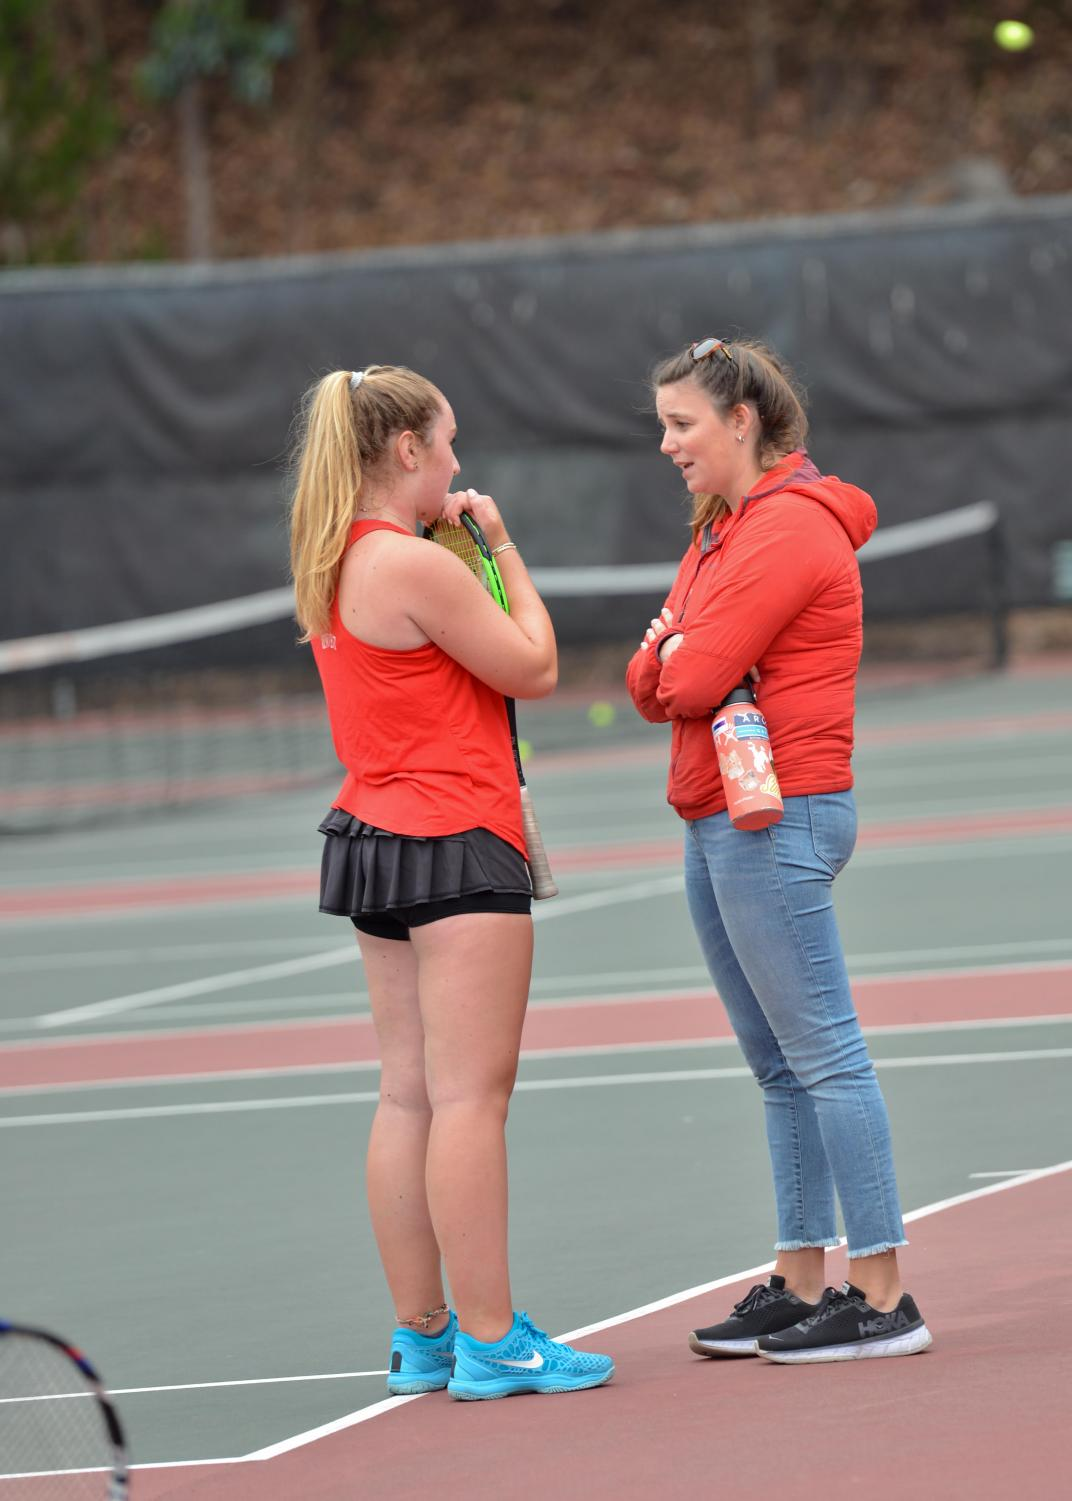 Varsity tennis coach Erin Minuth '11 chats with freshmen Elise Vulakh during a match against Sacred Heart Cathedral Preparatory. This is Minuth's first year as coach, and the team has a 5-0 record.